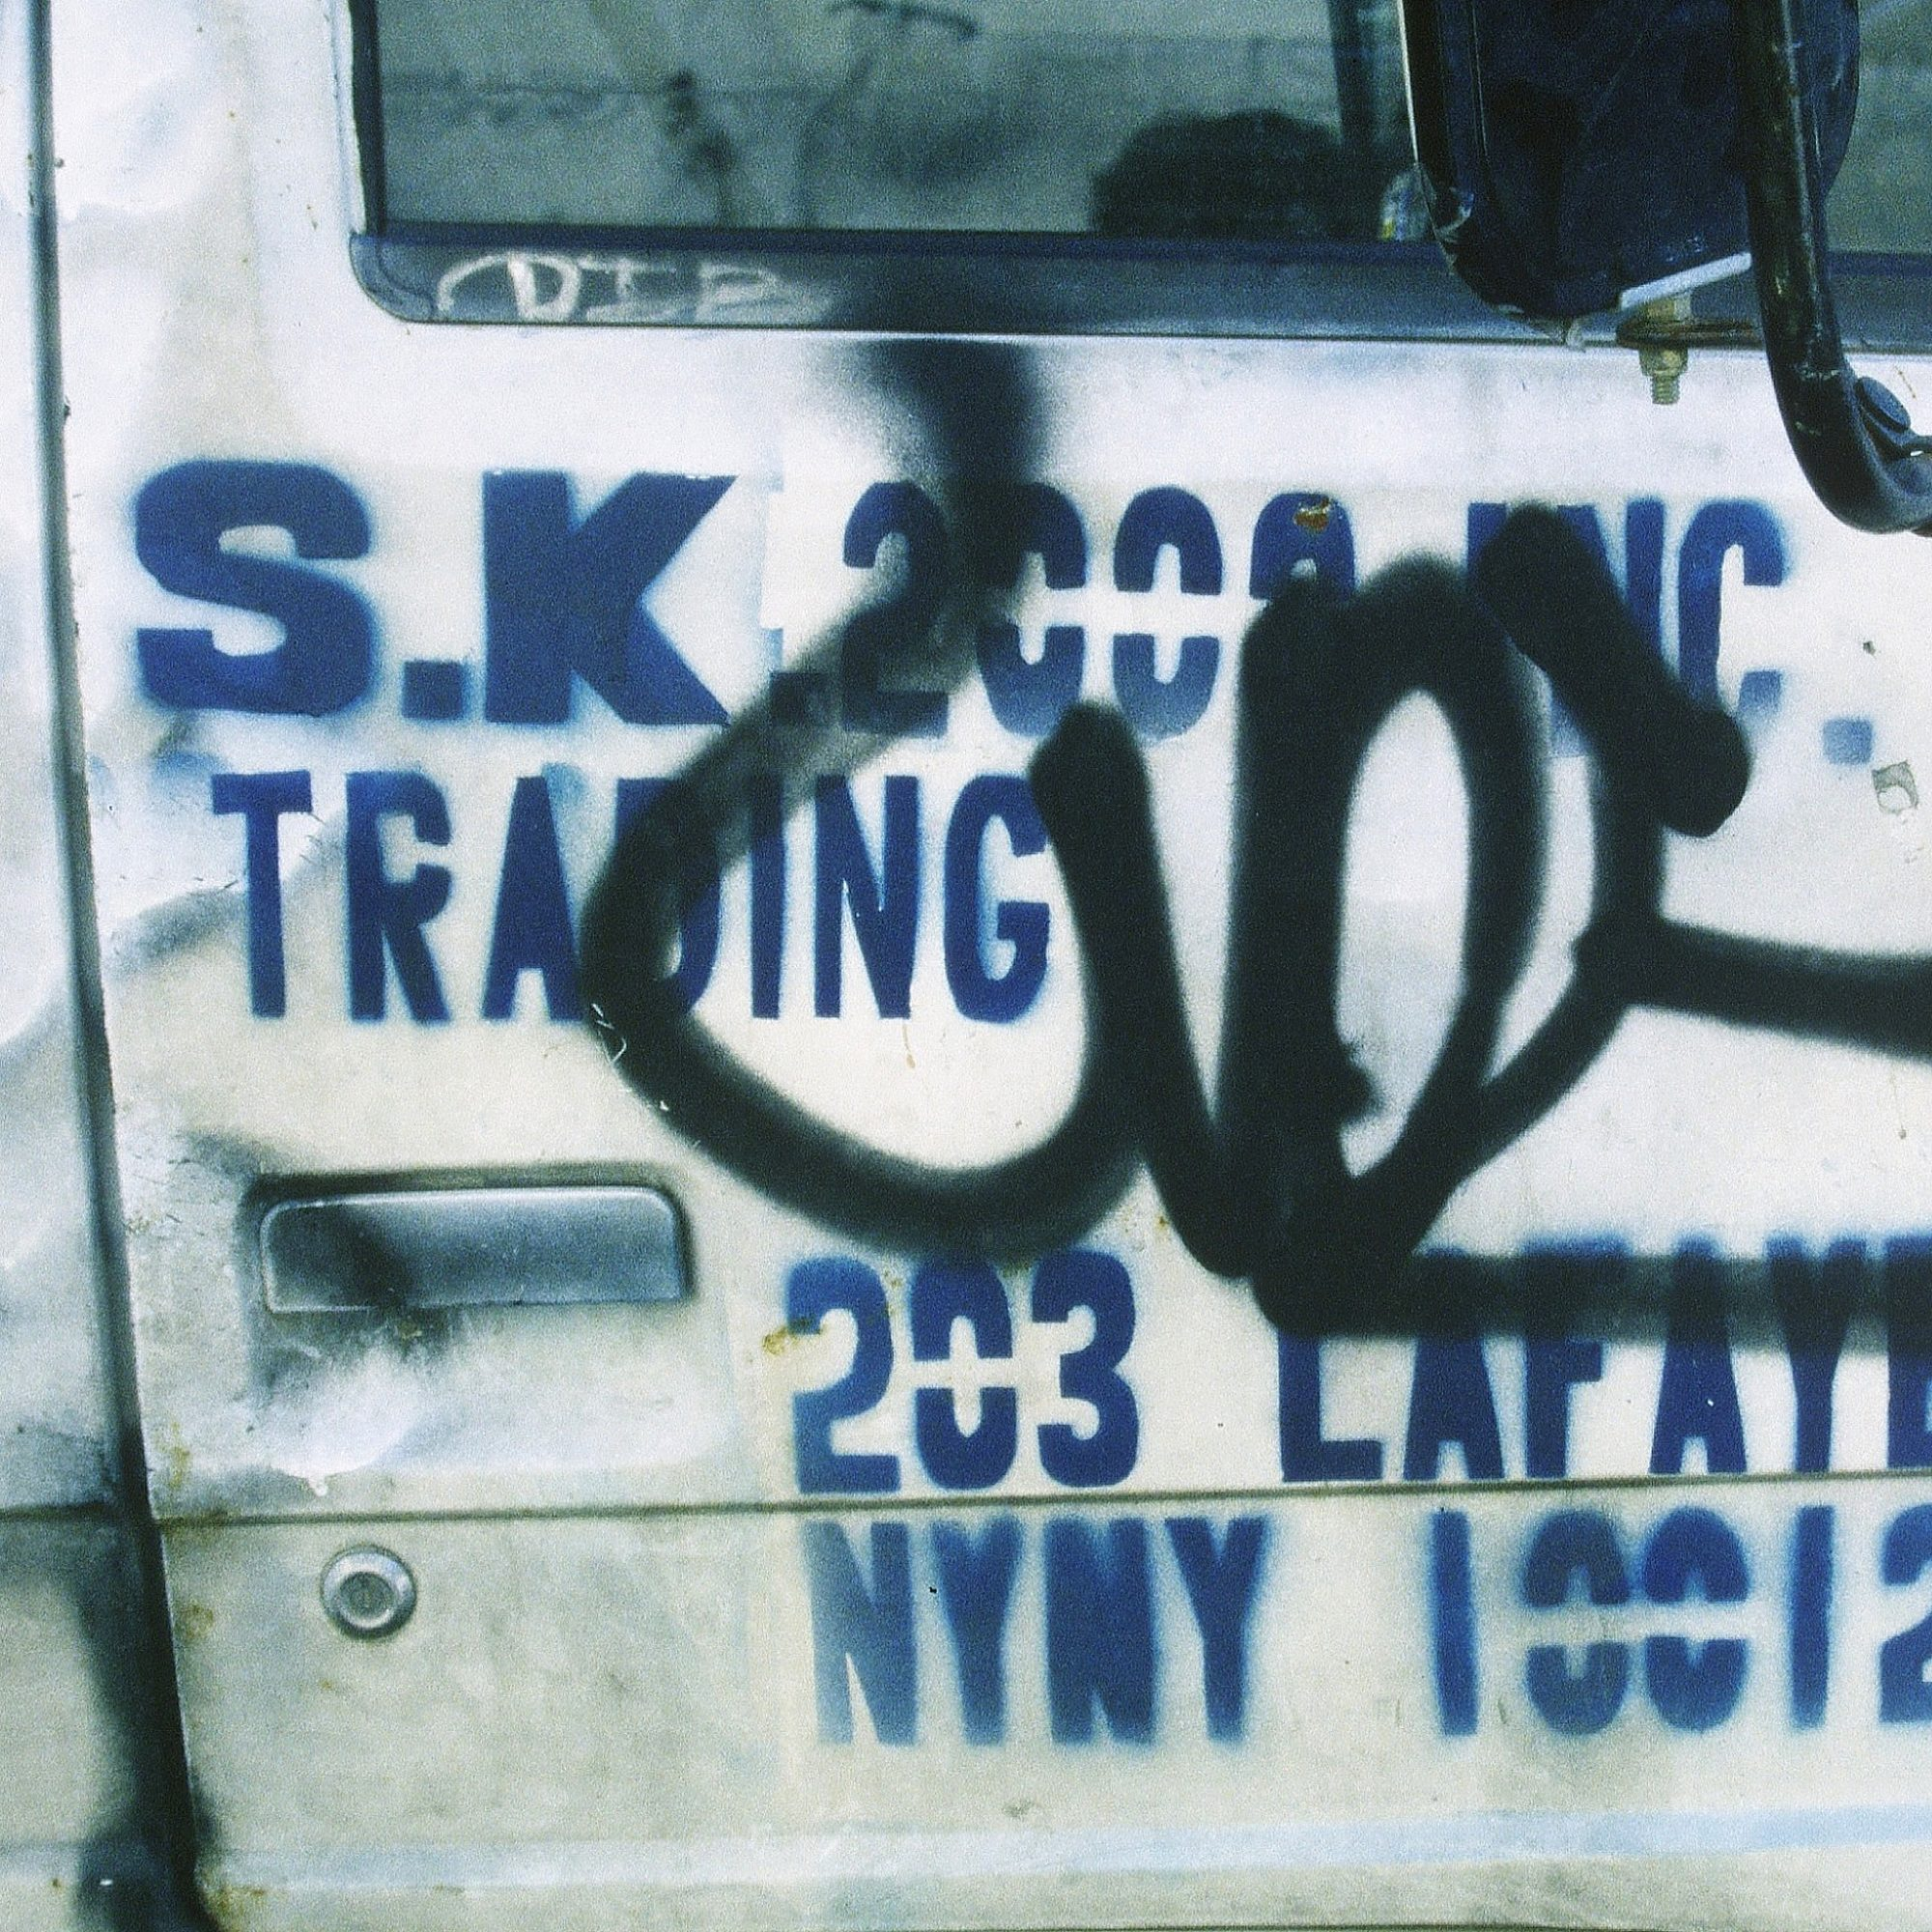 Commercial delivery truck with stencil sign